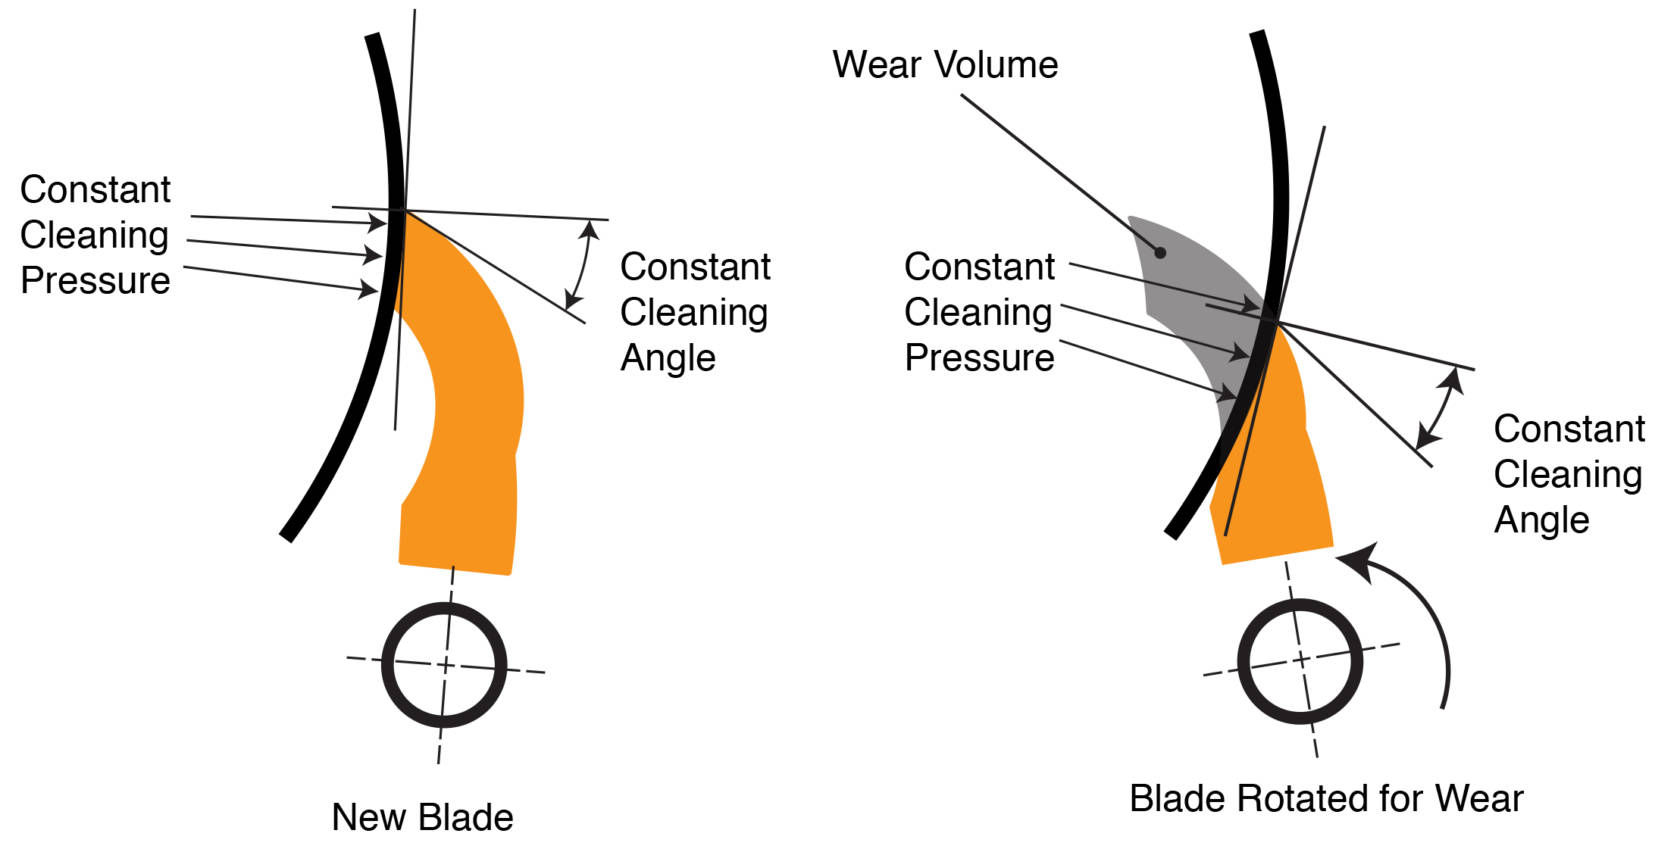 Optimize Belt Cleaner Tension To Maximize Performance And